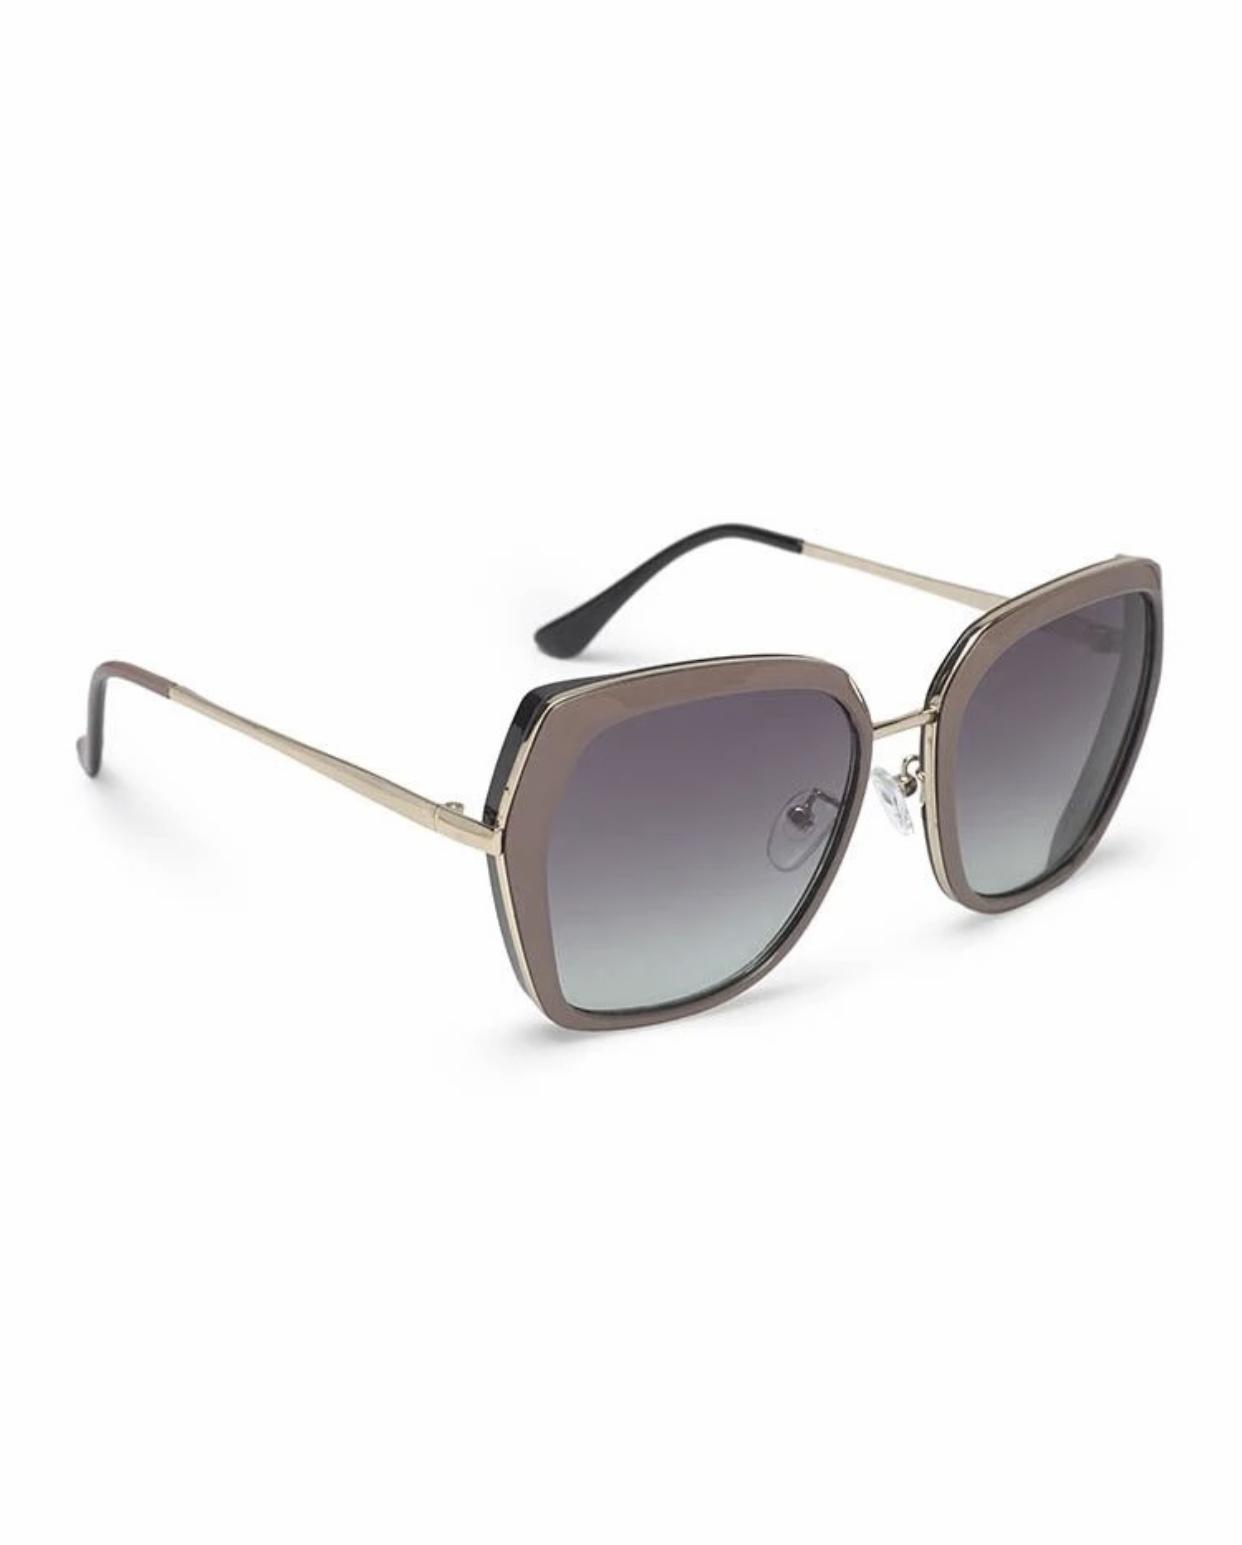 GAFAS DE SOL CHARLY THERAPY MODELO Olivia Taupe Negro